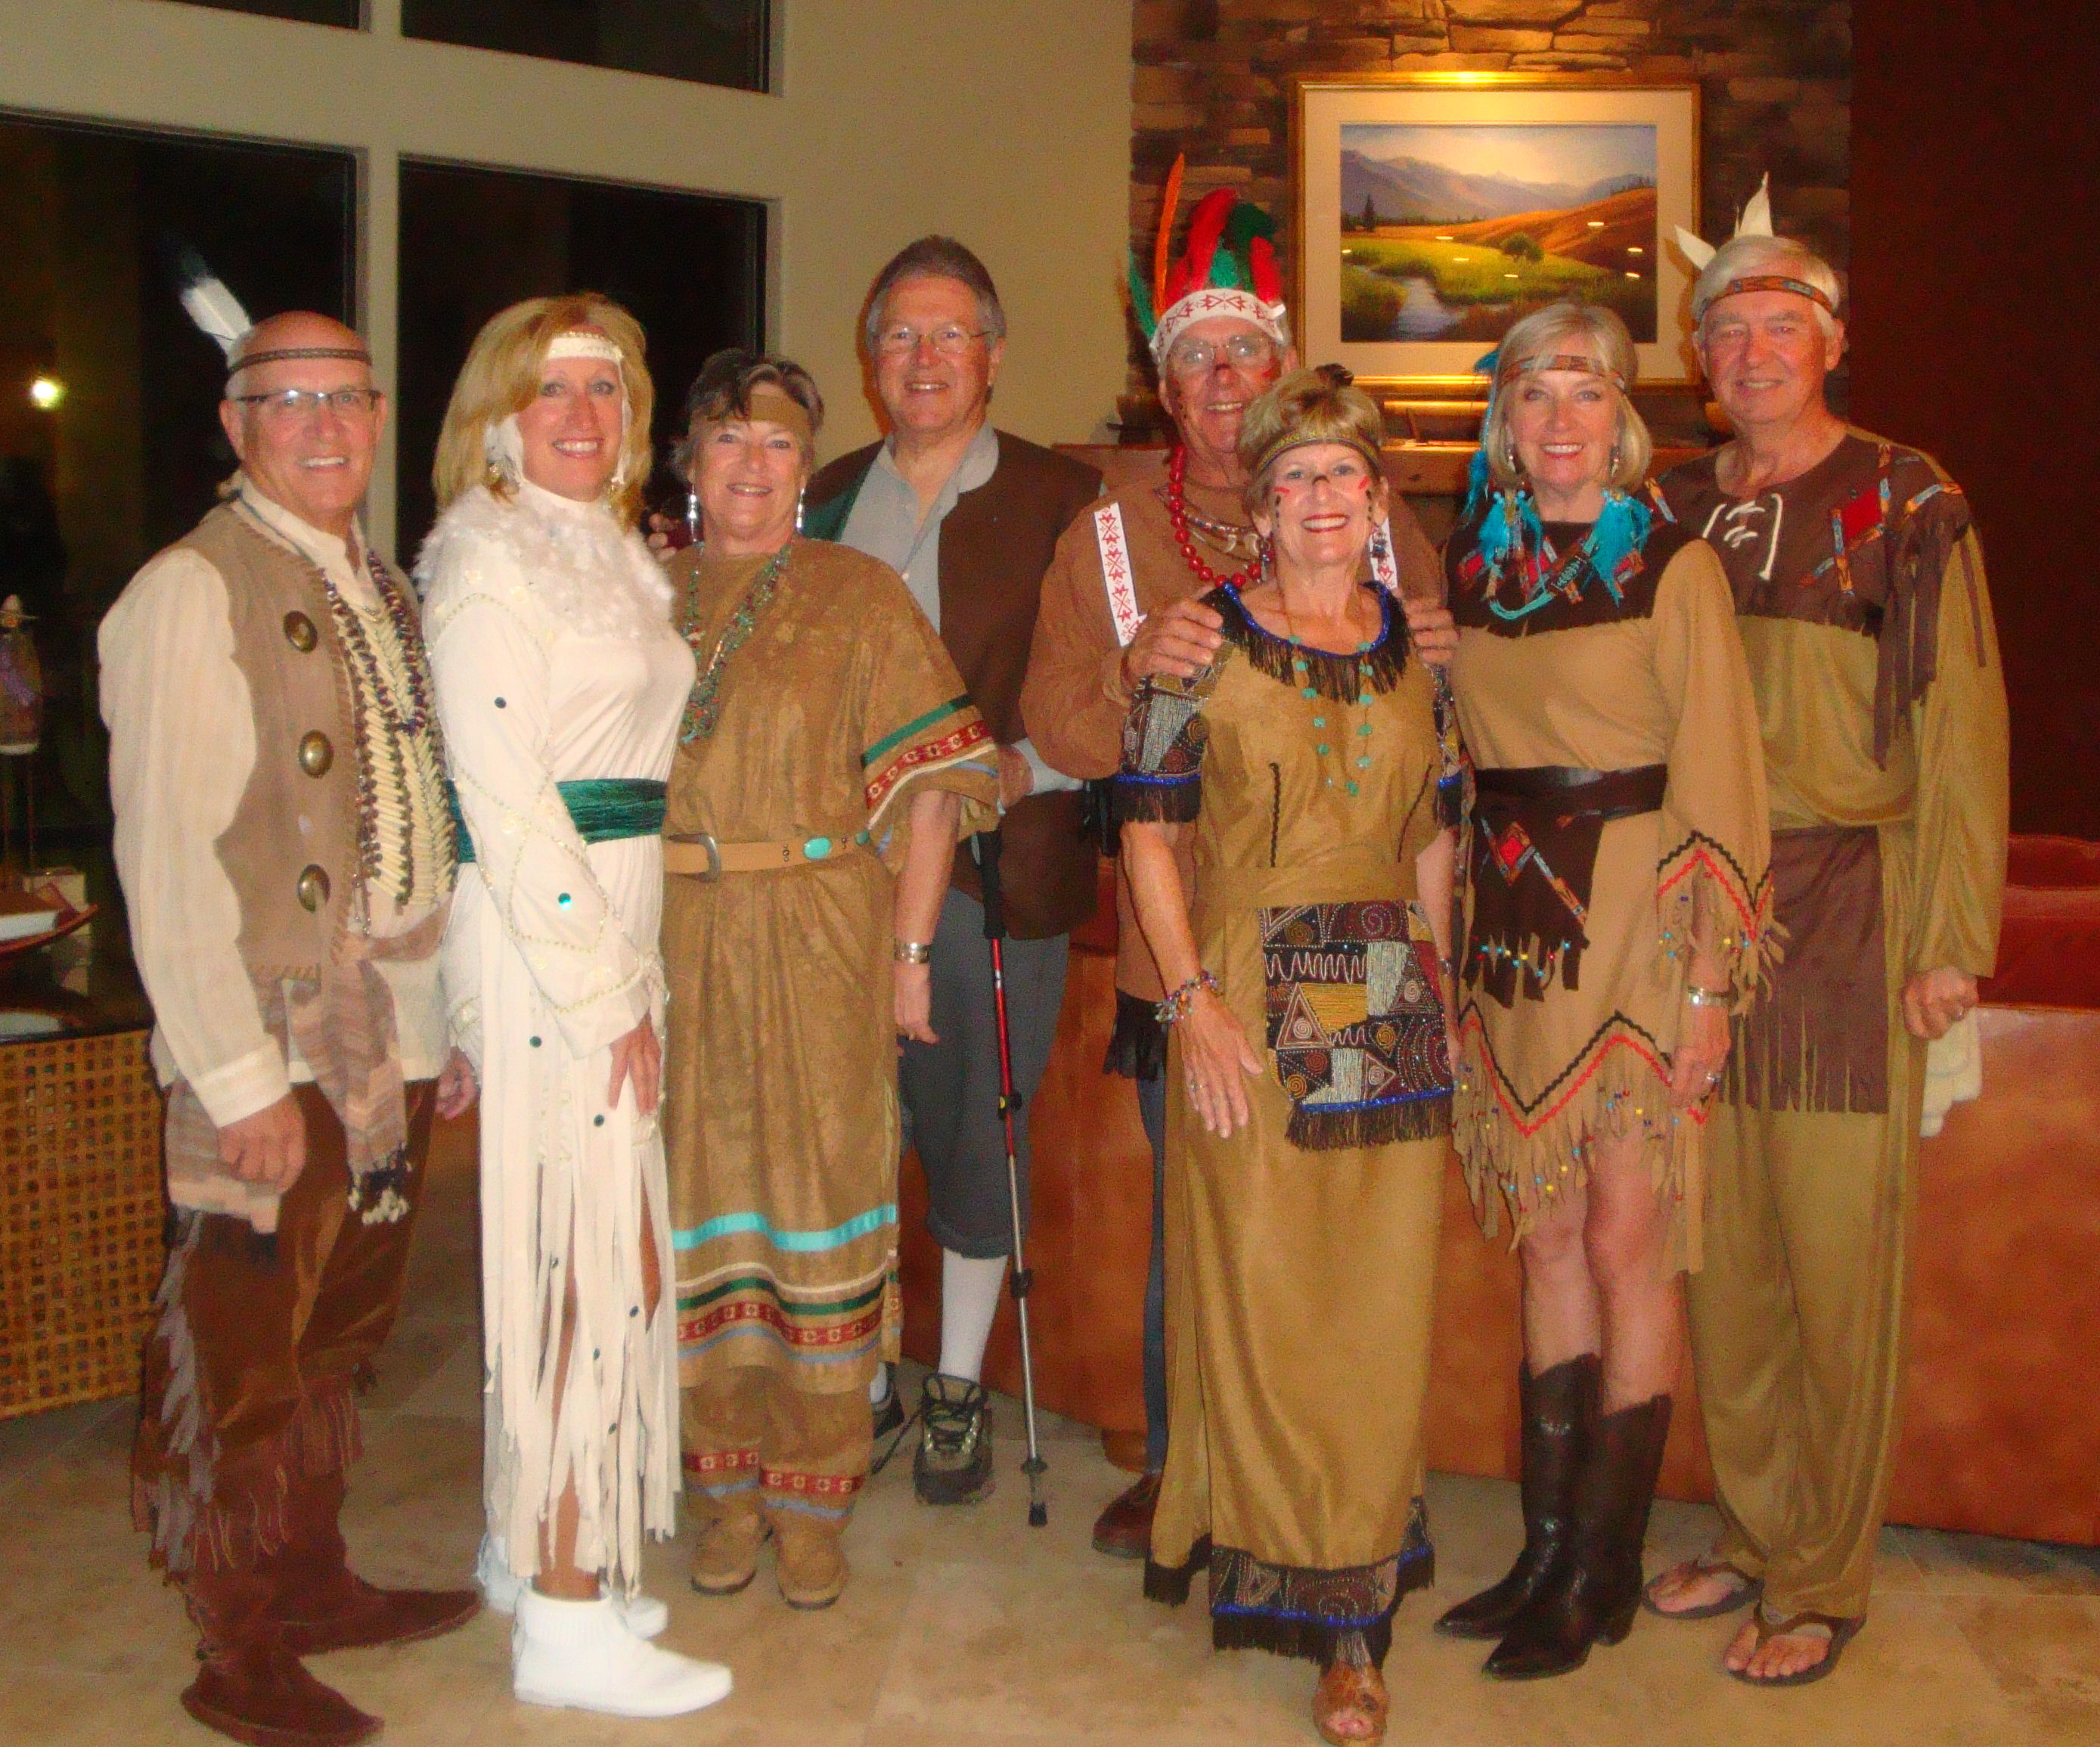 Everyone came in costumeu2026almost everyone in Indian ... & Native American Gourmet Dinner u2013 at Halloween Time   Travels with ...